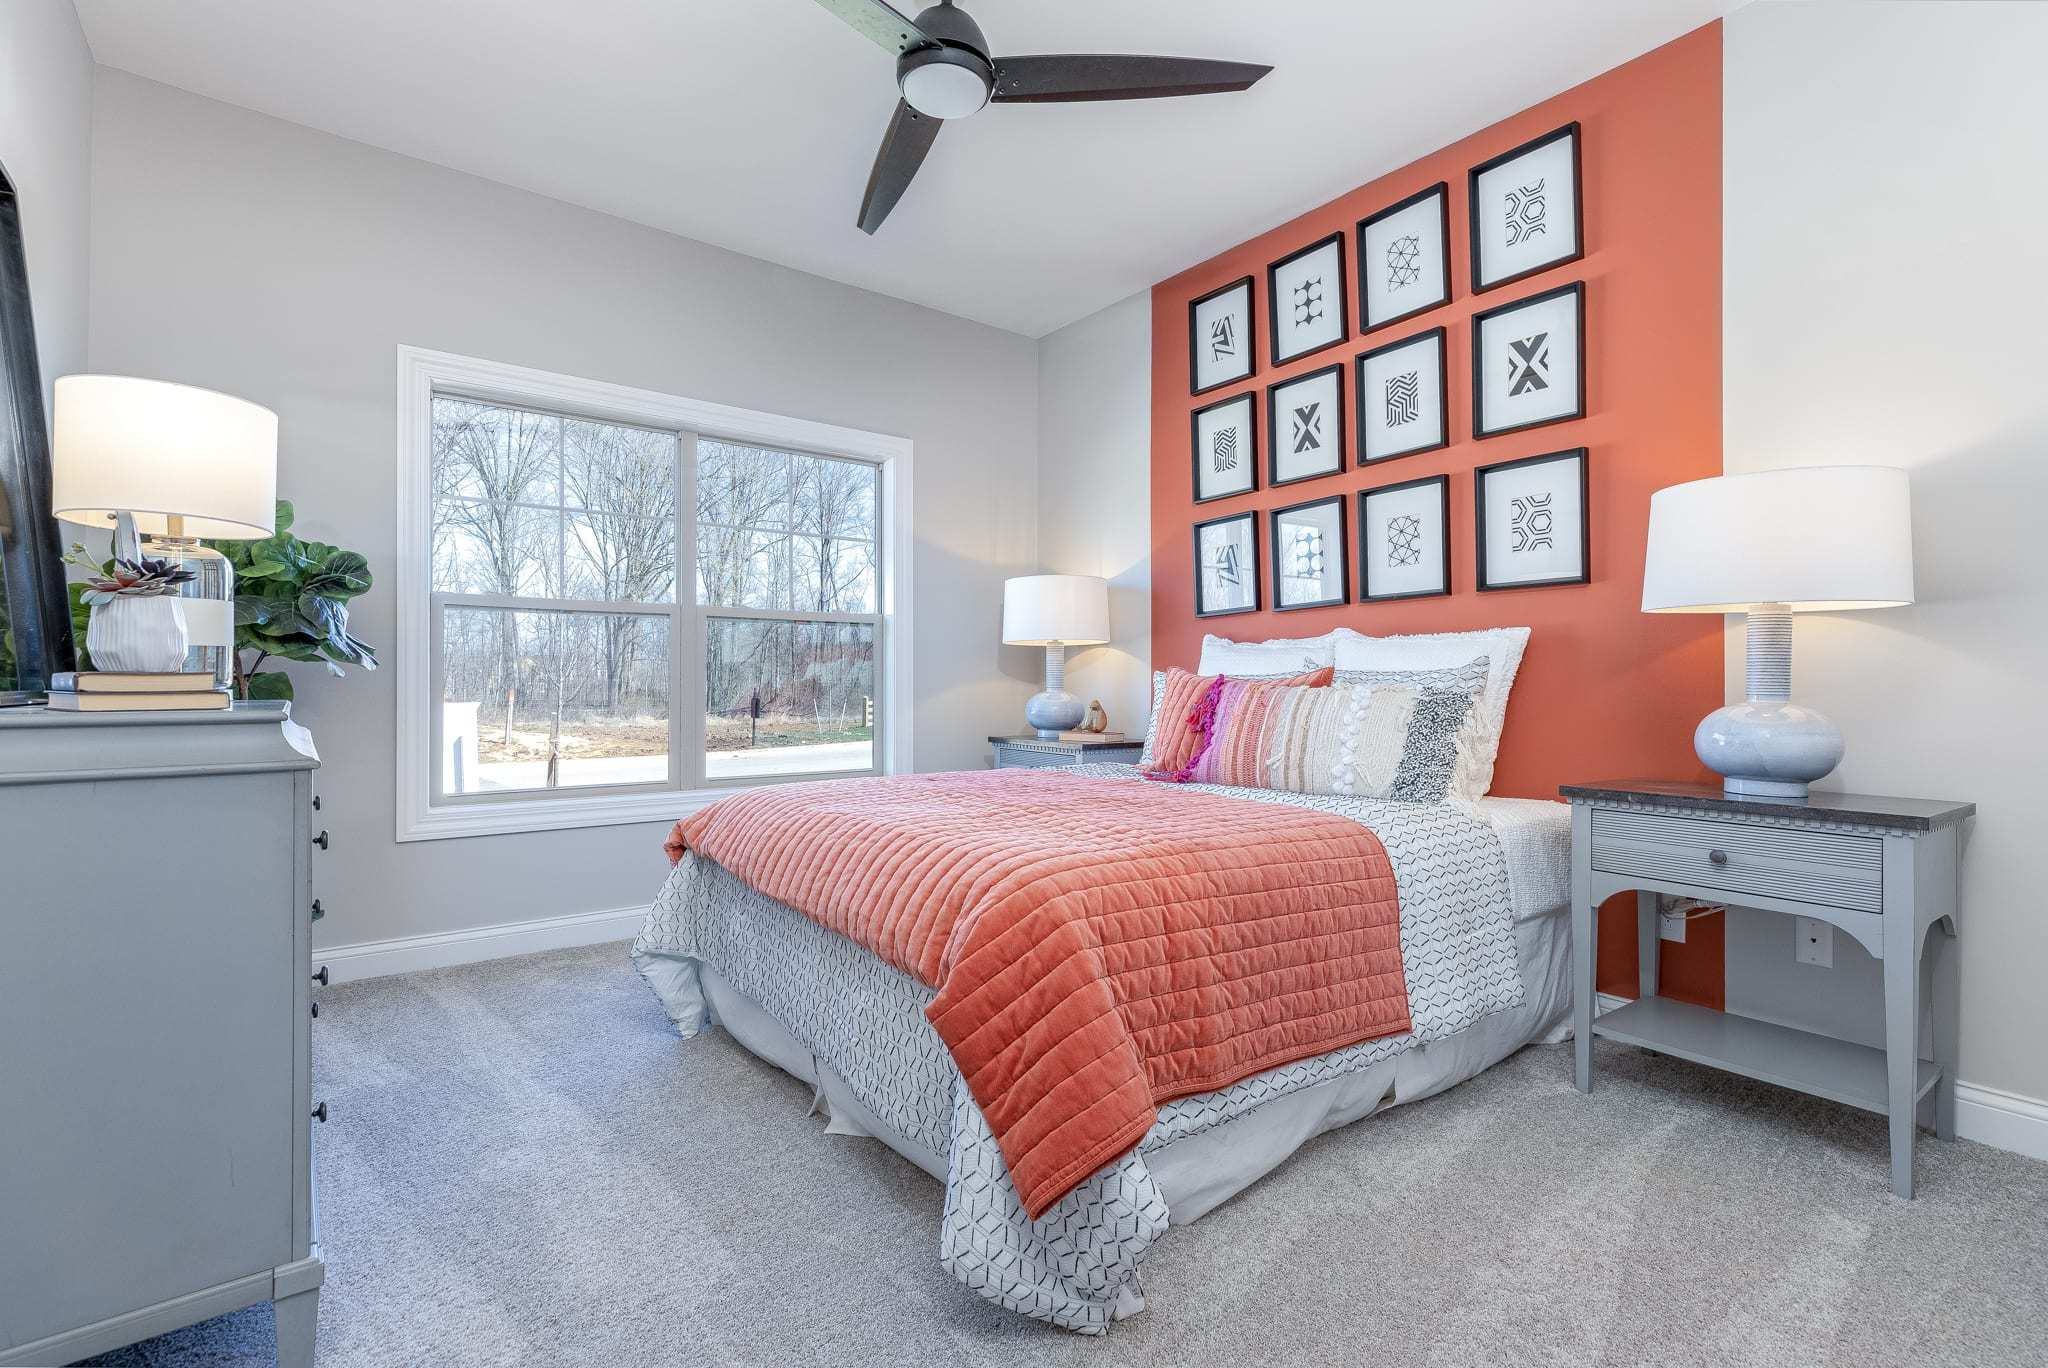 Bedroom featured in the Promenade III - Charlotte** By Epcon Communities in Charlotte, NC